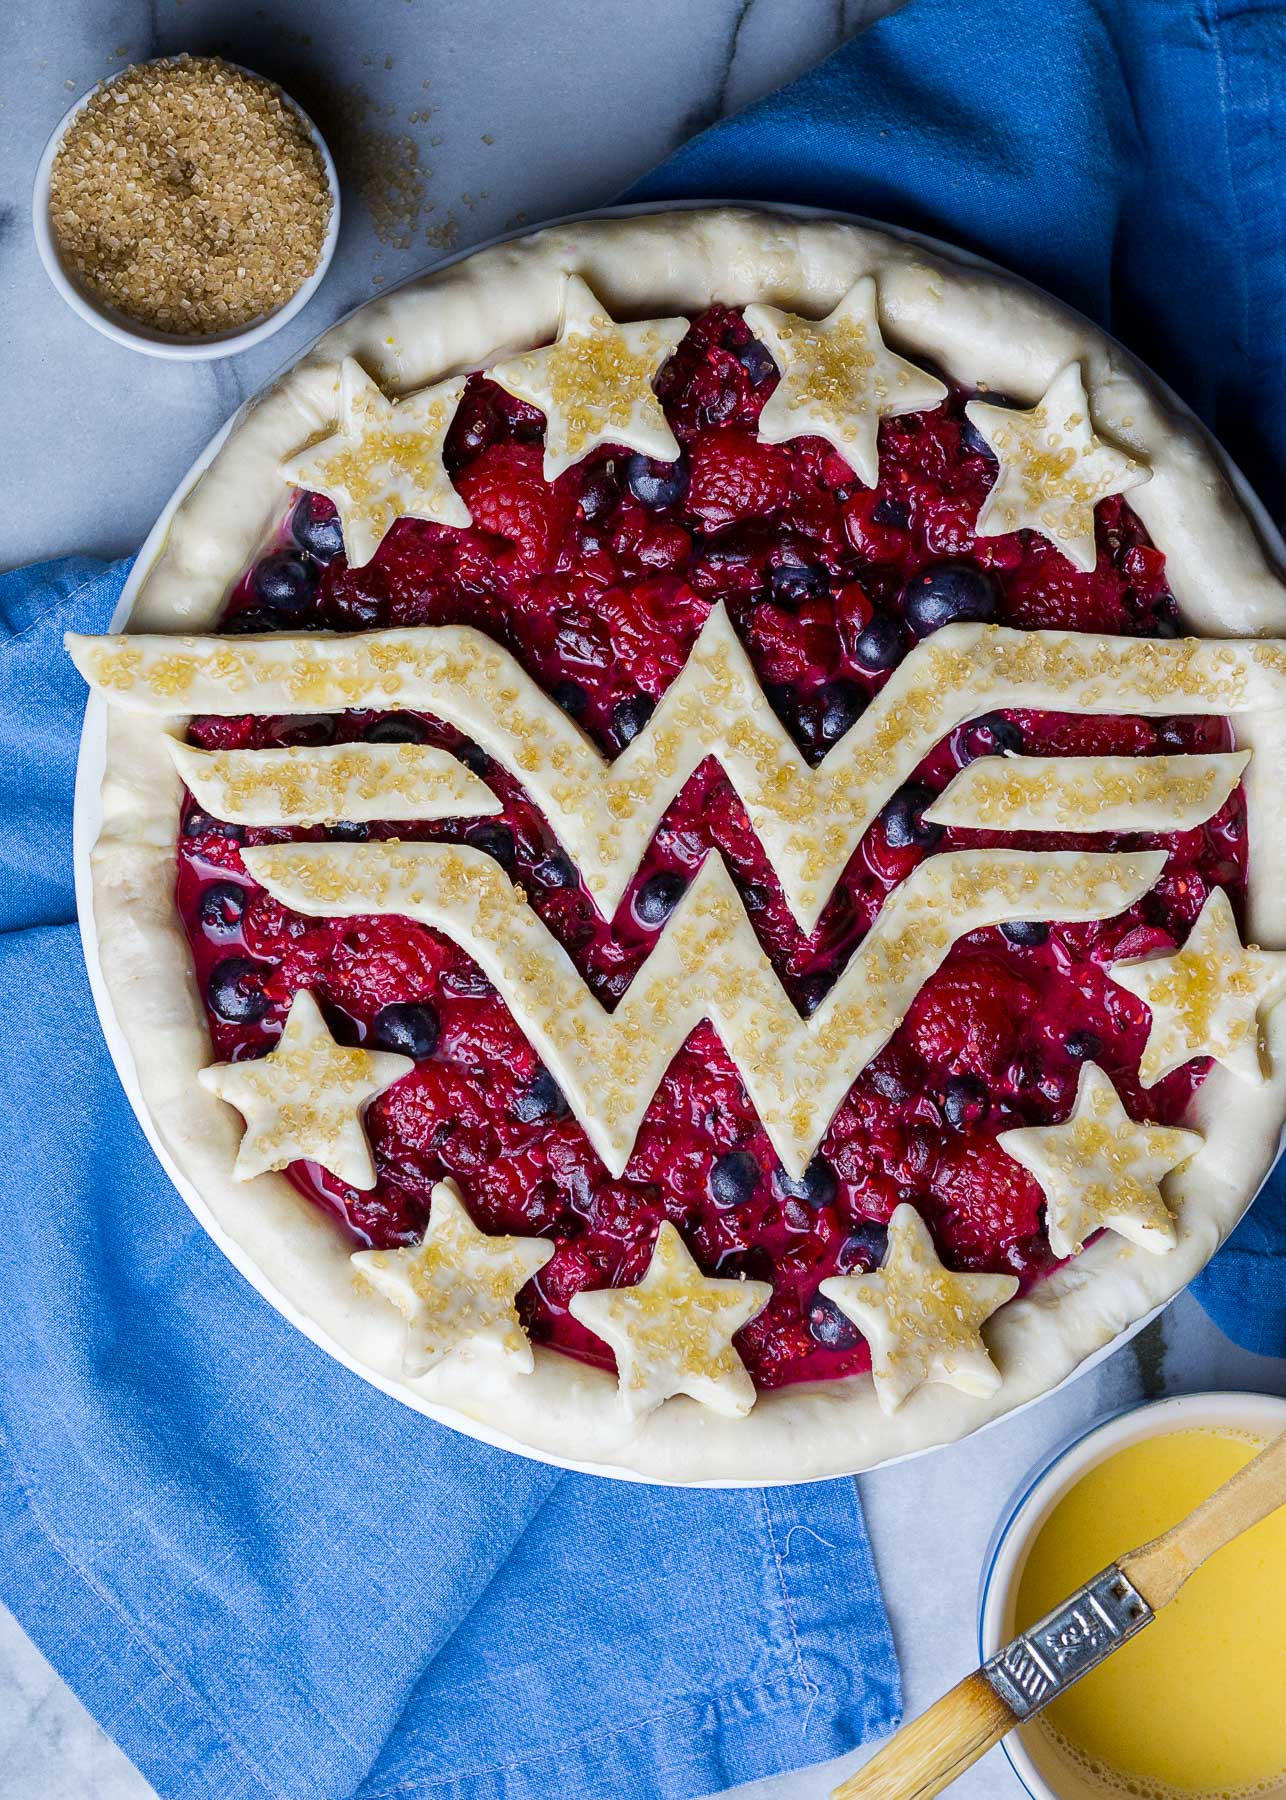 wonder-woman-berry-pie-6.jpg